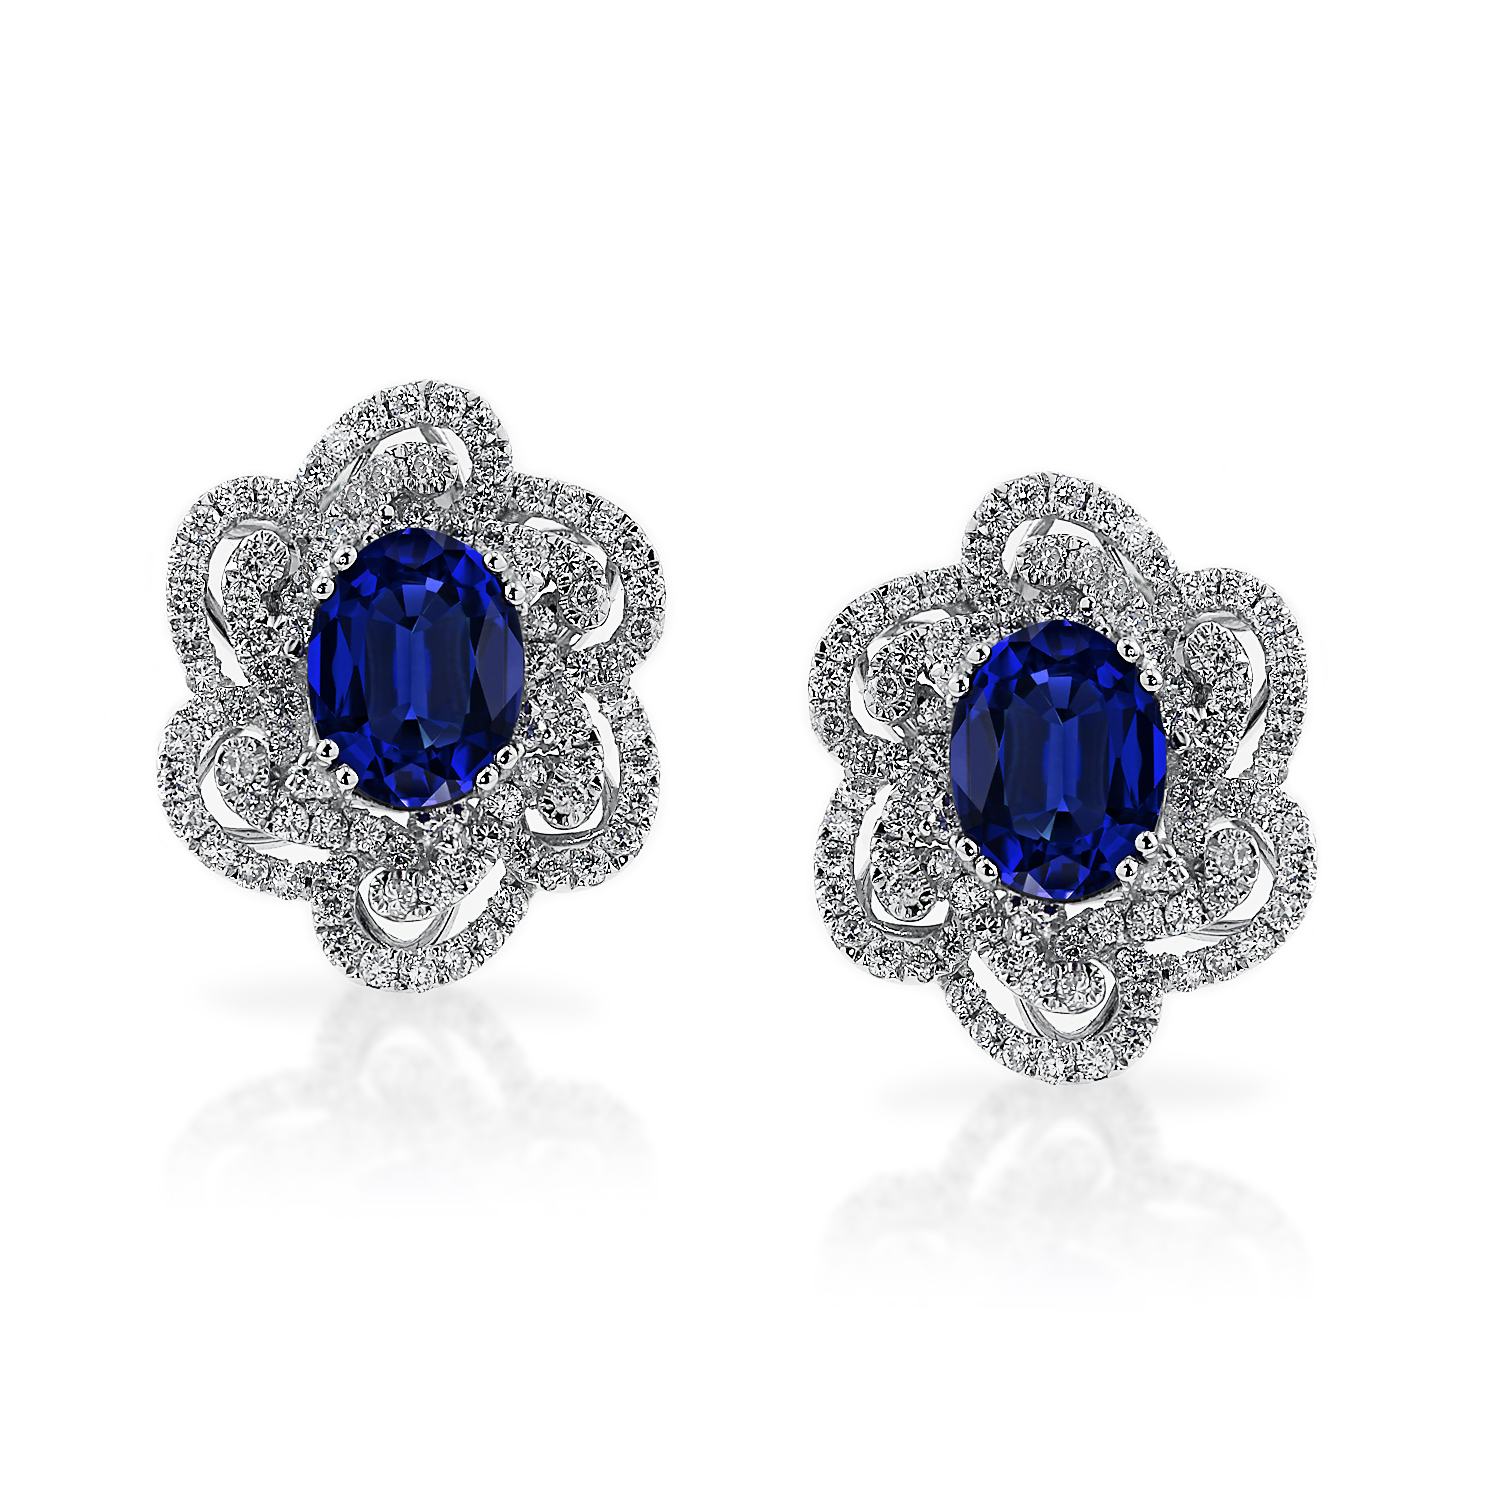 18K White Gold Halo Diamond Earrings with 3 5/8 cttw Oval Blue Sapphire and 9/10 cttw Diamonds IGI Certified